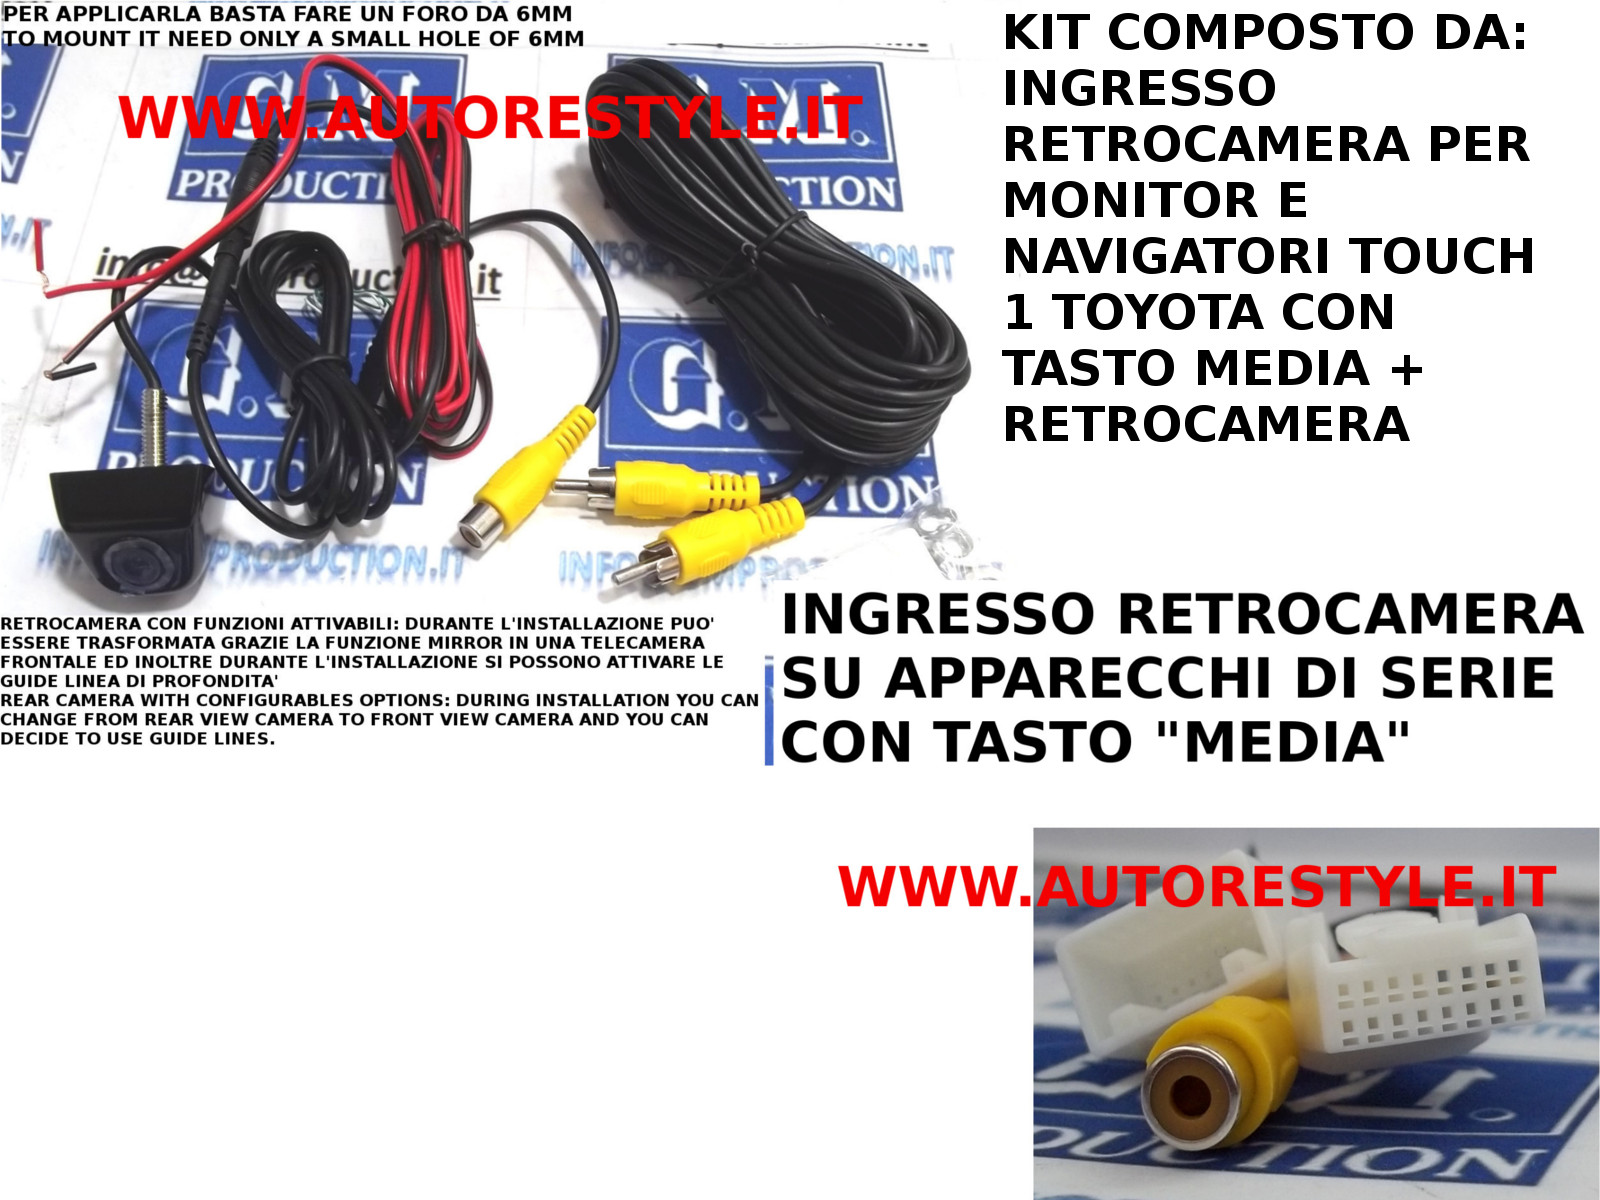 INTERFACCIA INGRESSO RETROCAMERA E RETROCAMERA TOYOTA GT86 PRIUS PRIUS PLUS AURIS 2012 YARIS 2012 RAV4 2012